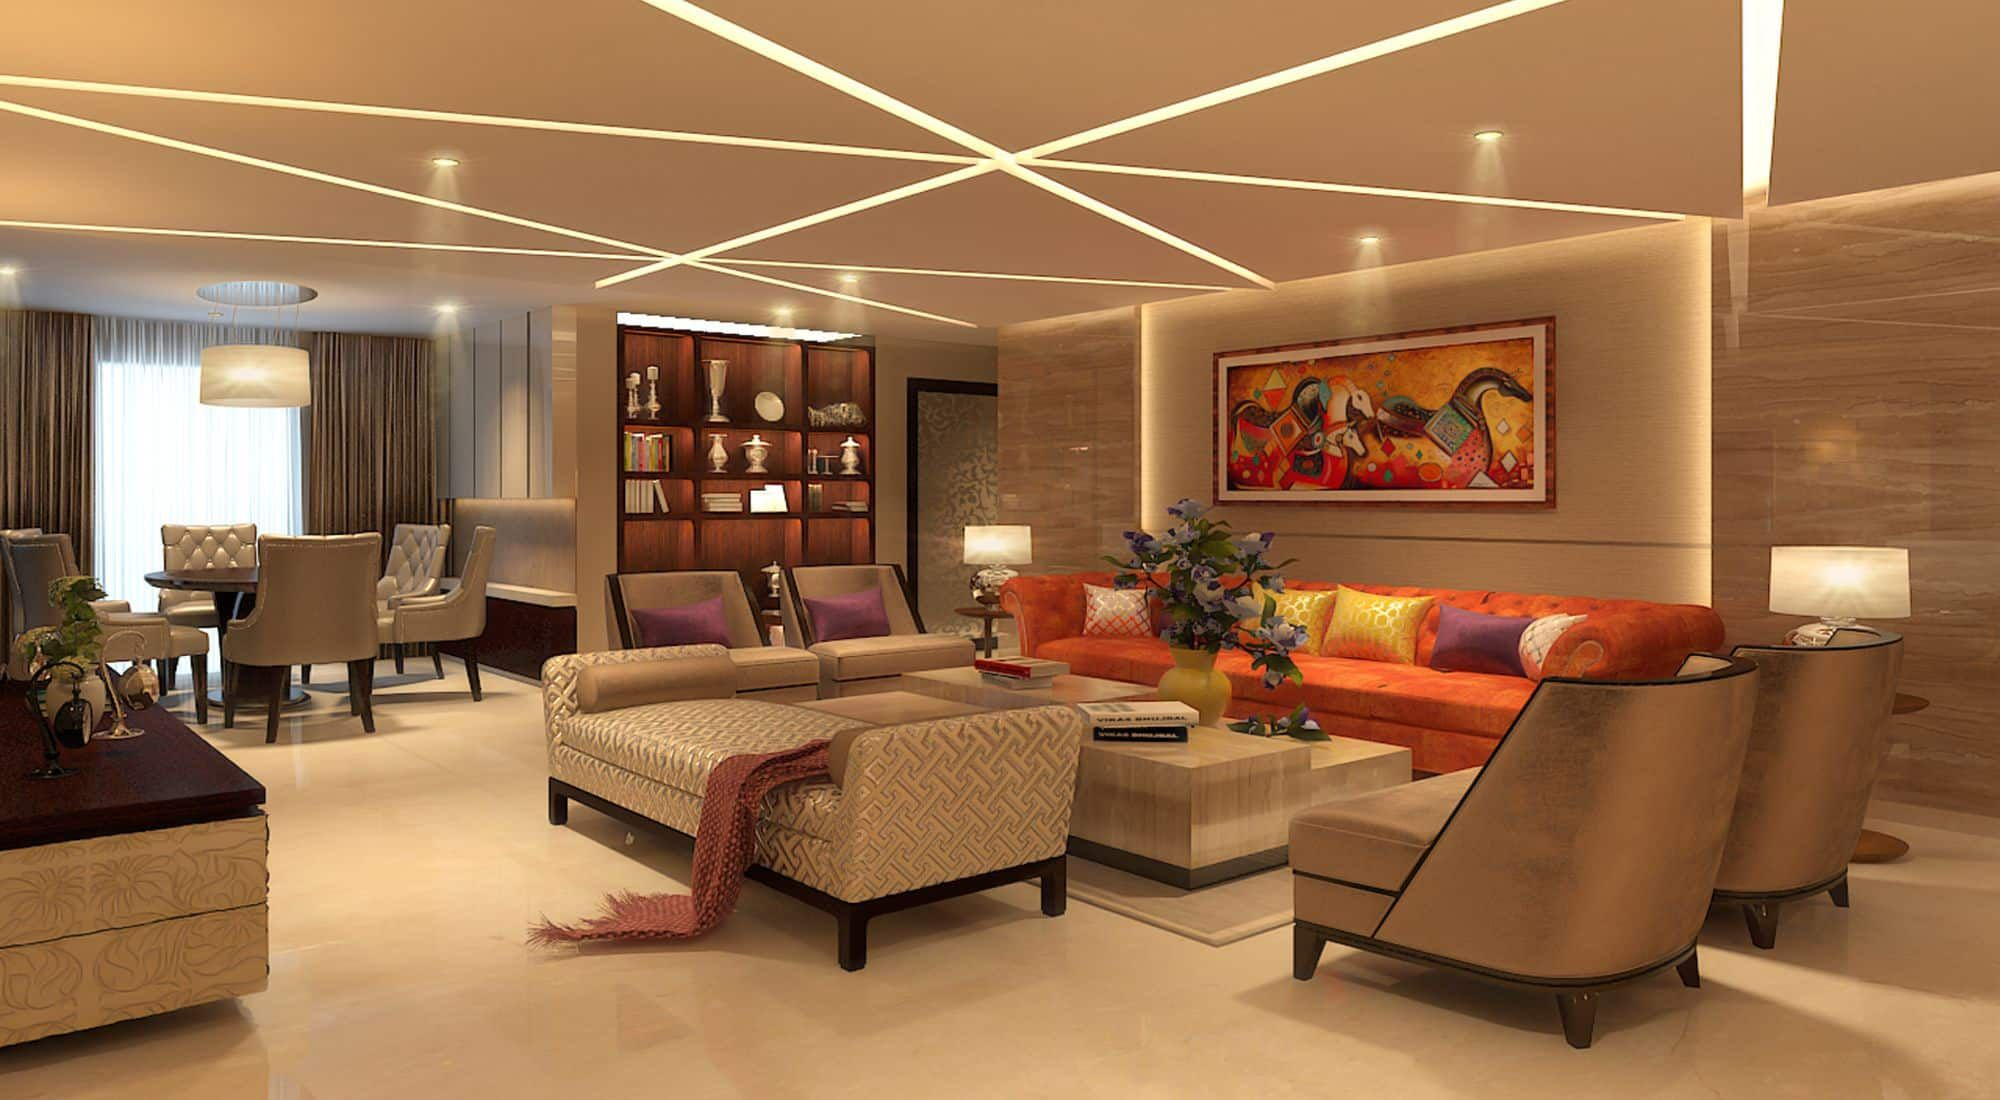 fedisa interior designer interior designer mumbai best online interior design websites 25 Lovely Interior Designers In Mumbai. Luxurious Living Room by SHROFFLEoN